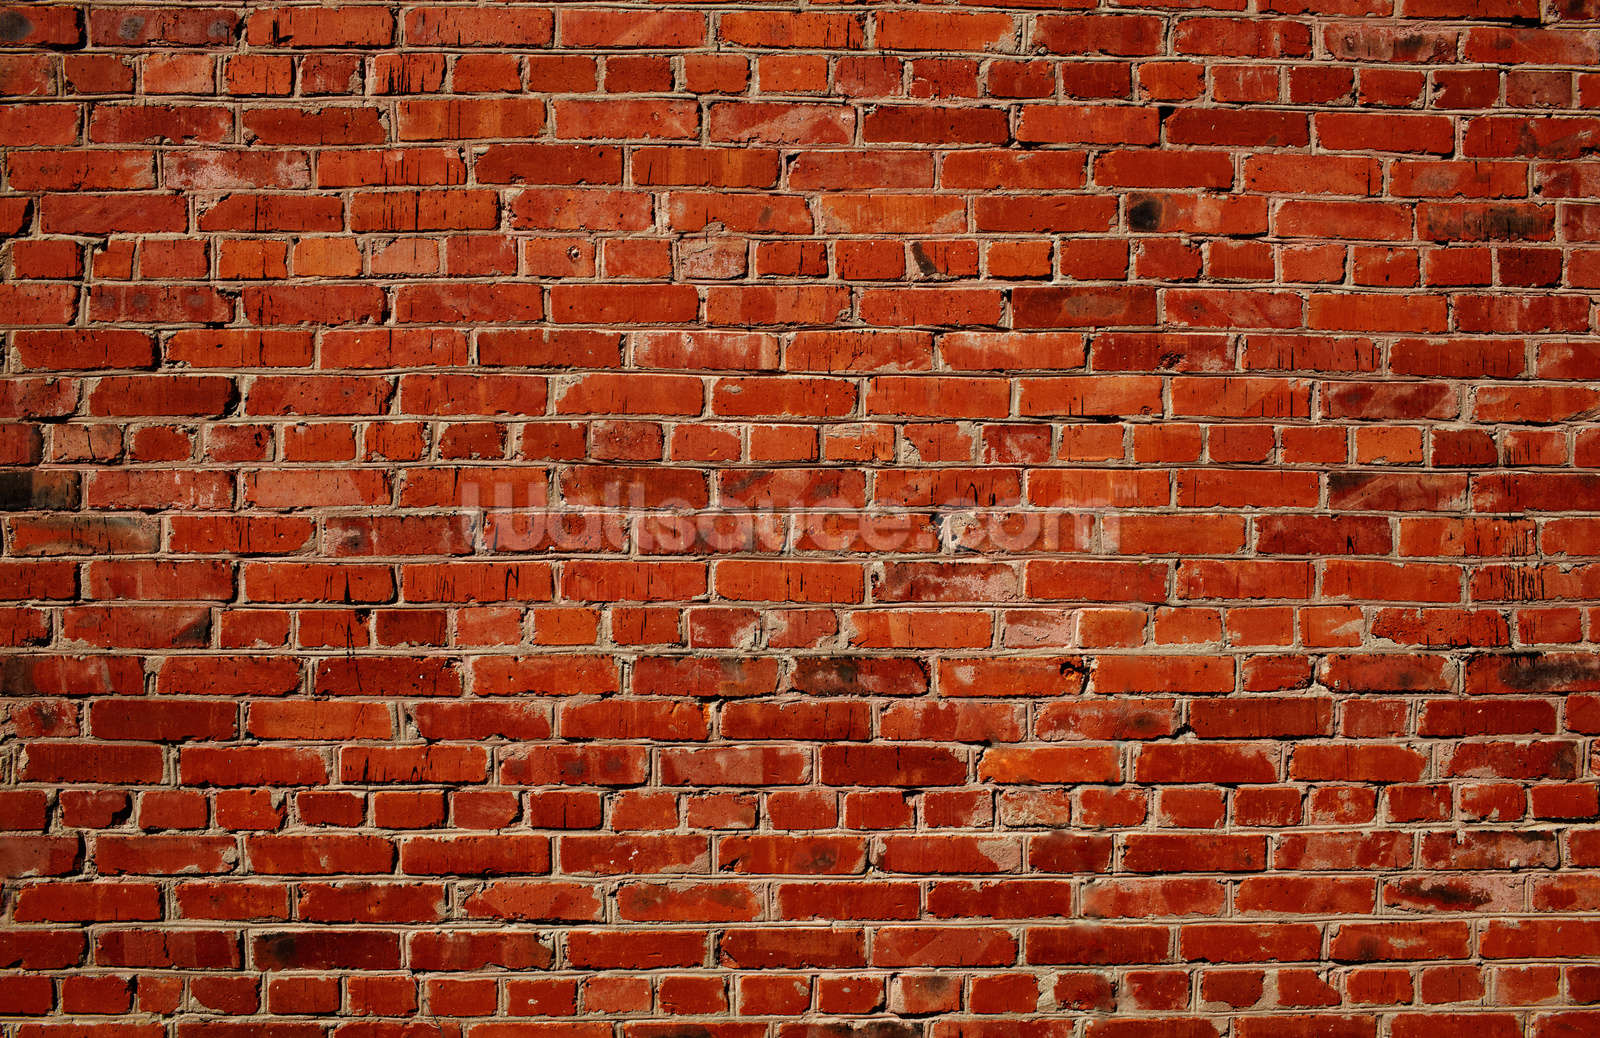 Red brick wall wallpaper wall mural wallsauce for Wallpaper images for house walls